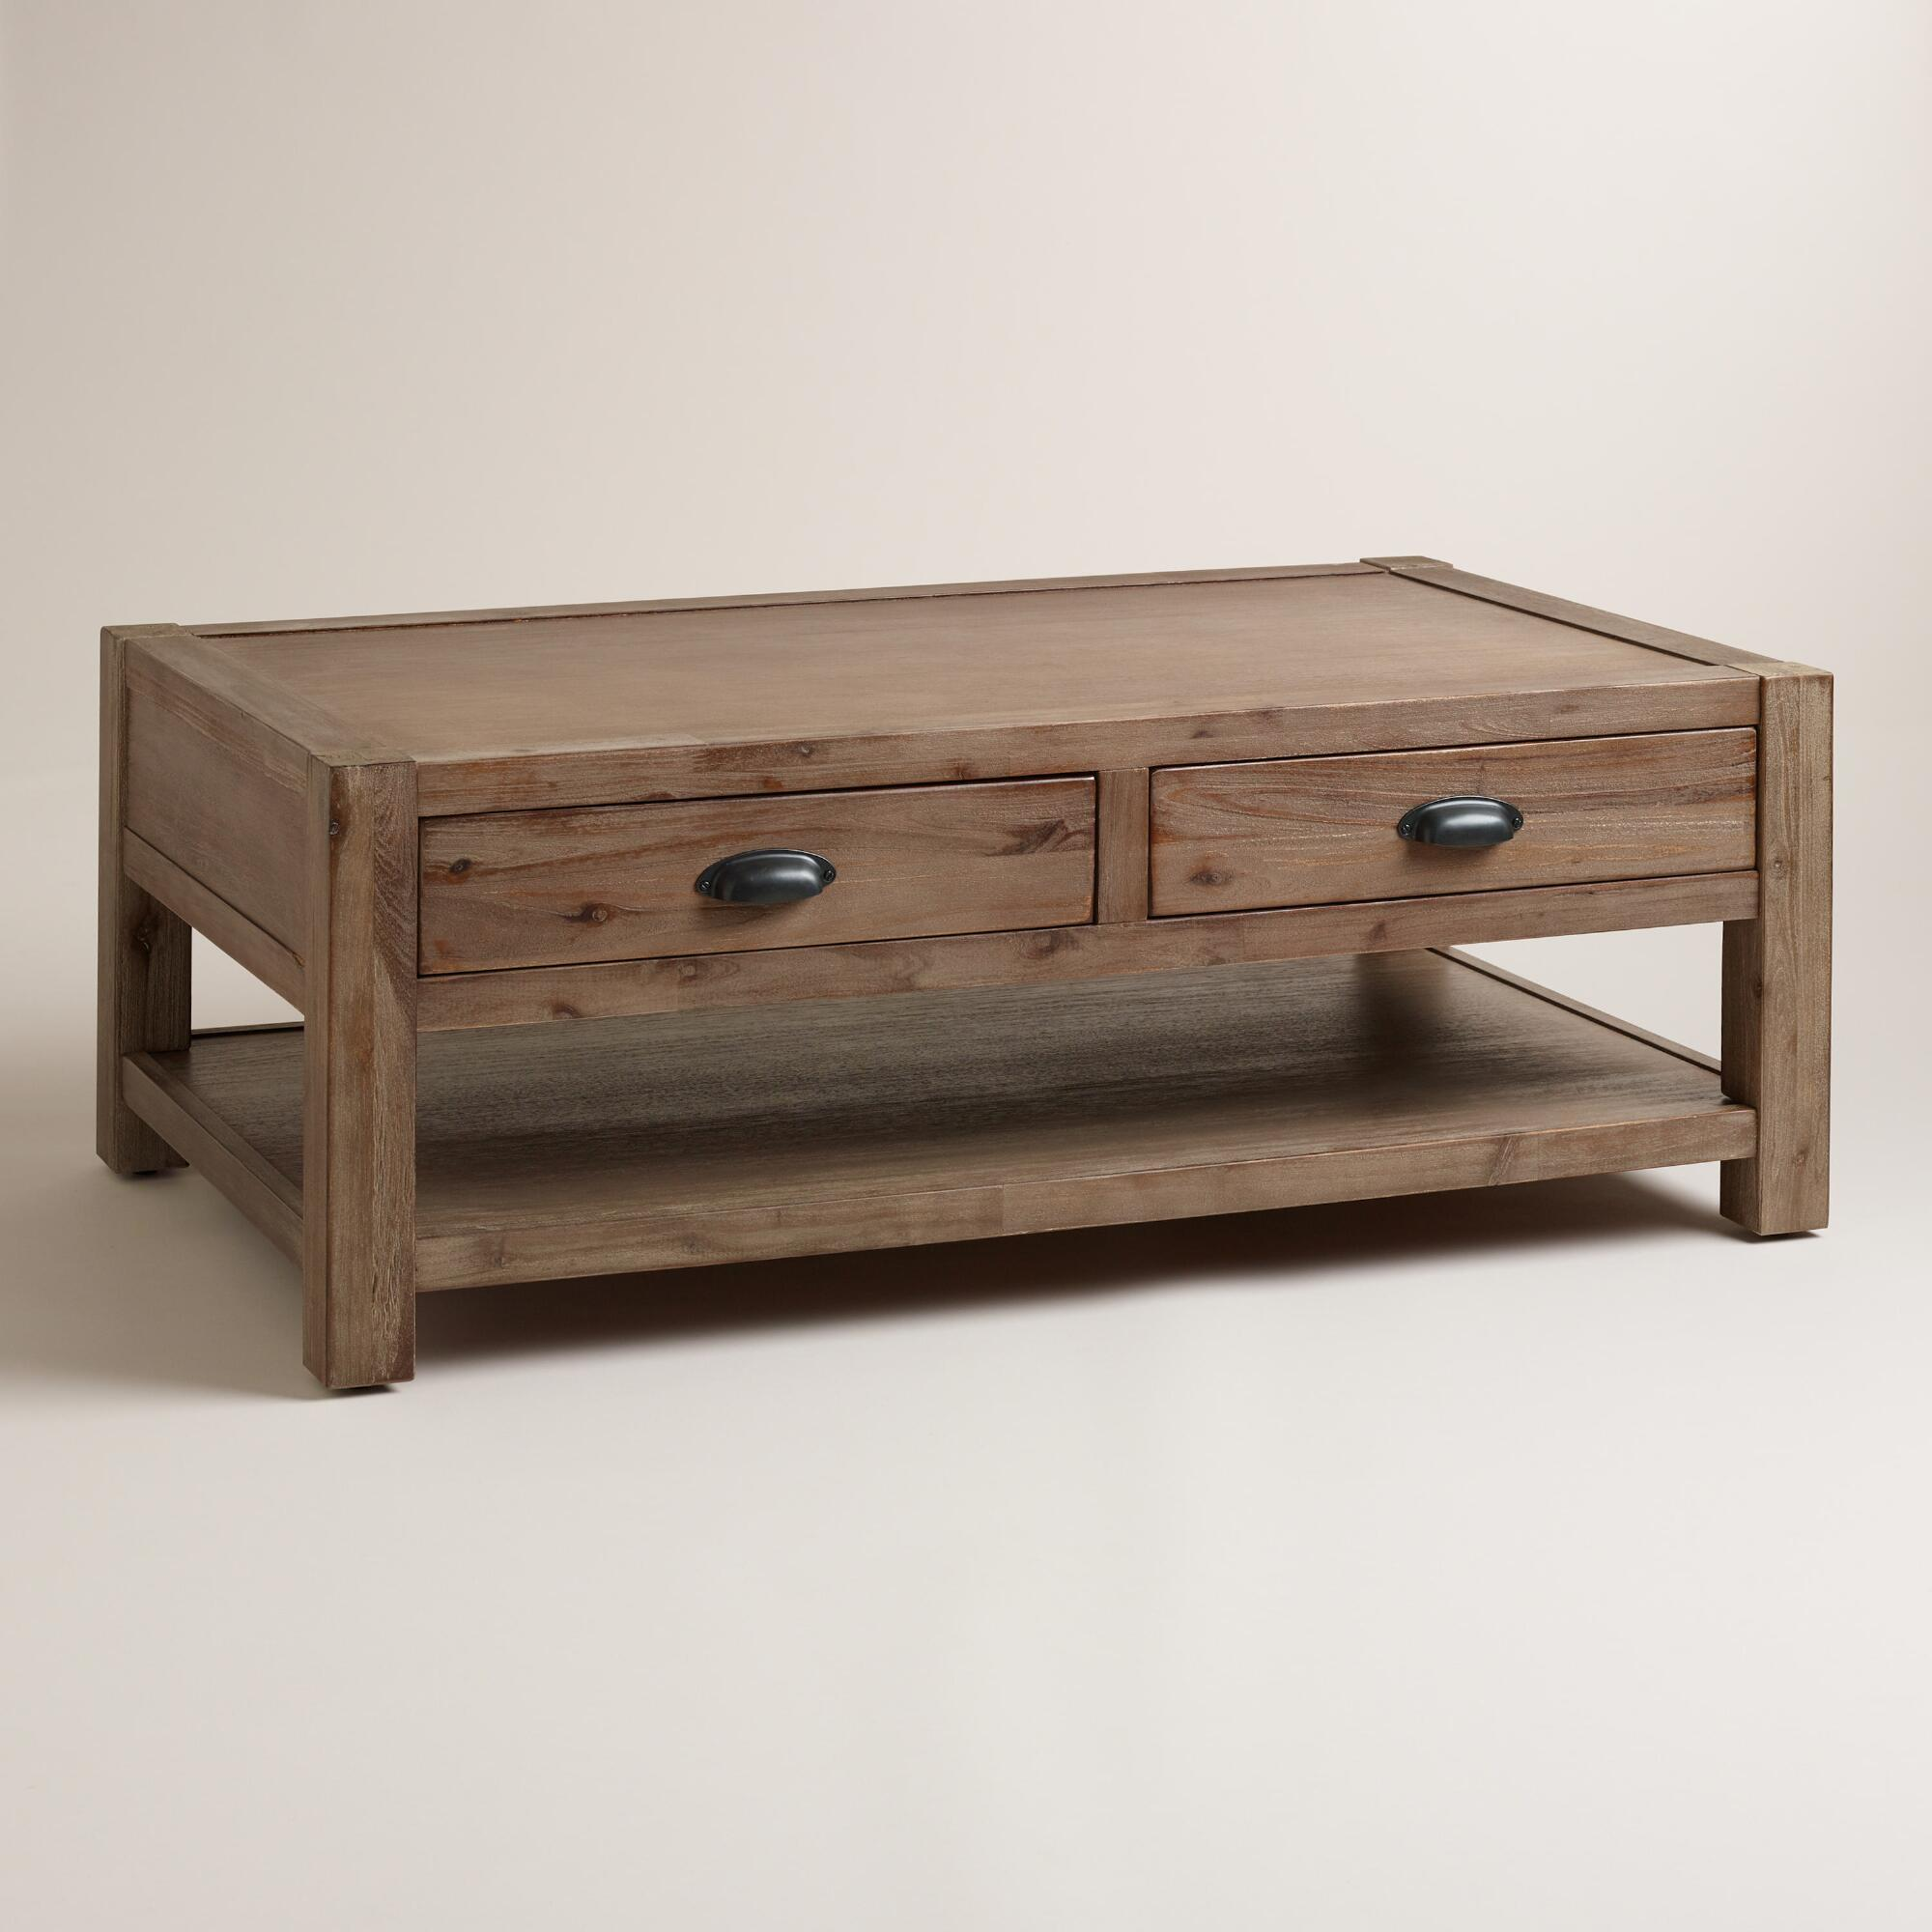 Wood Quade Coffee Table From Cost Plus World Market Home